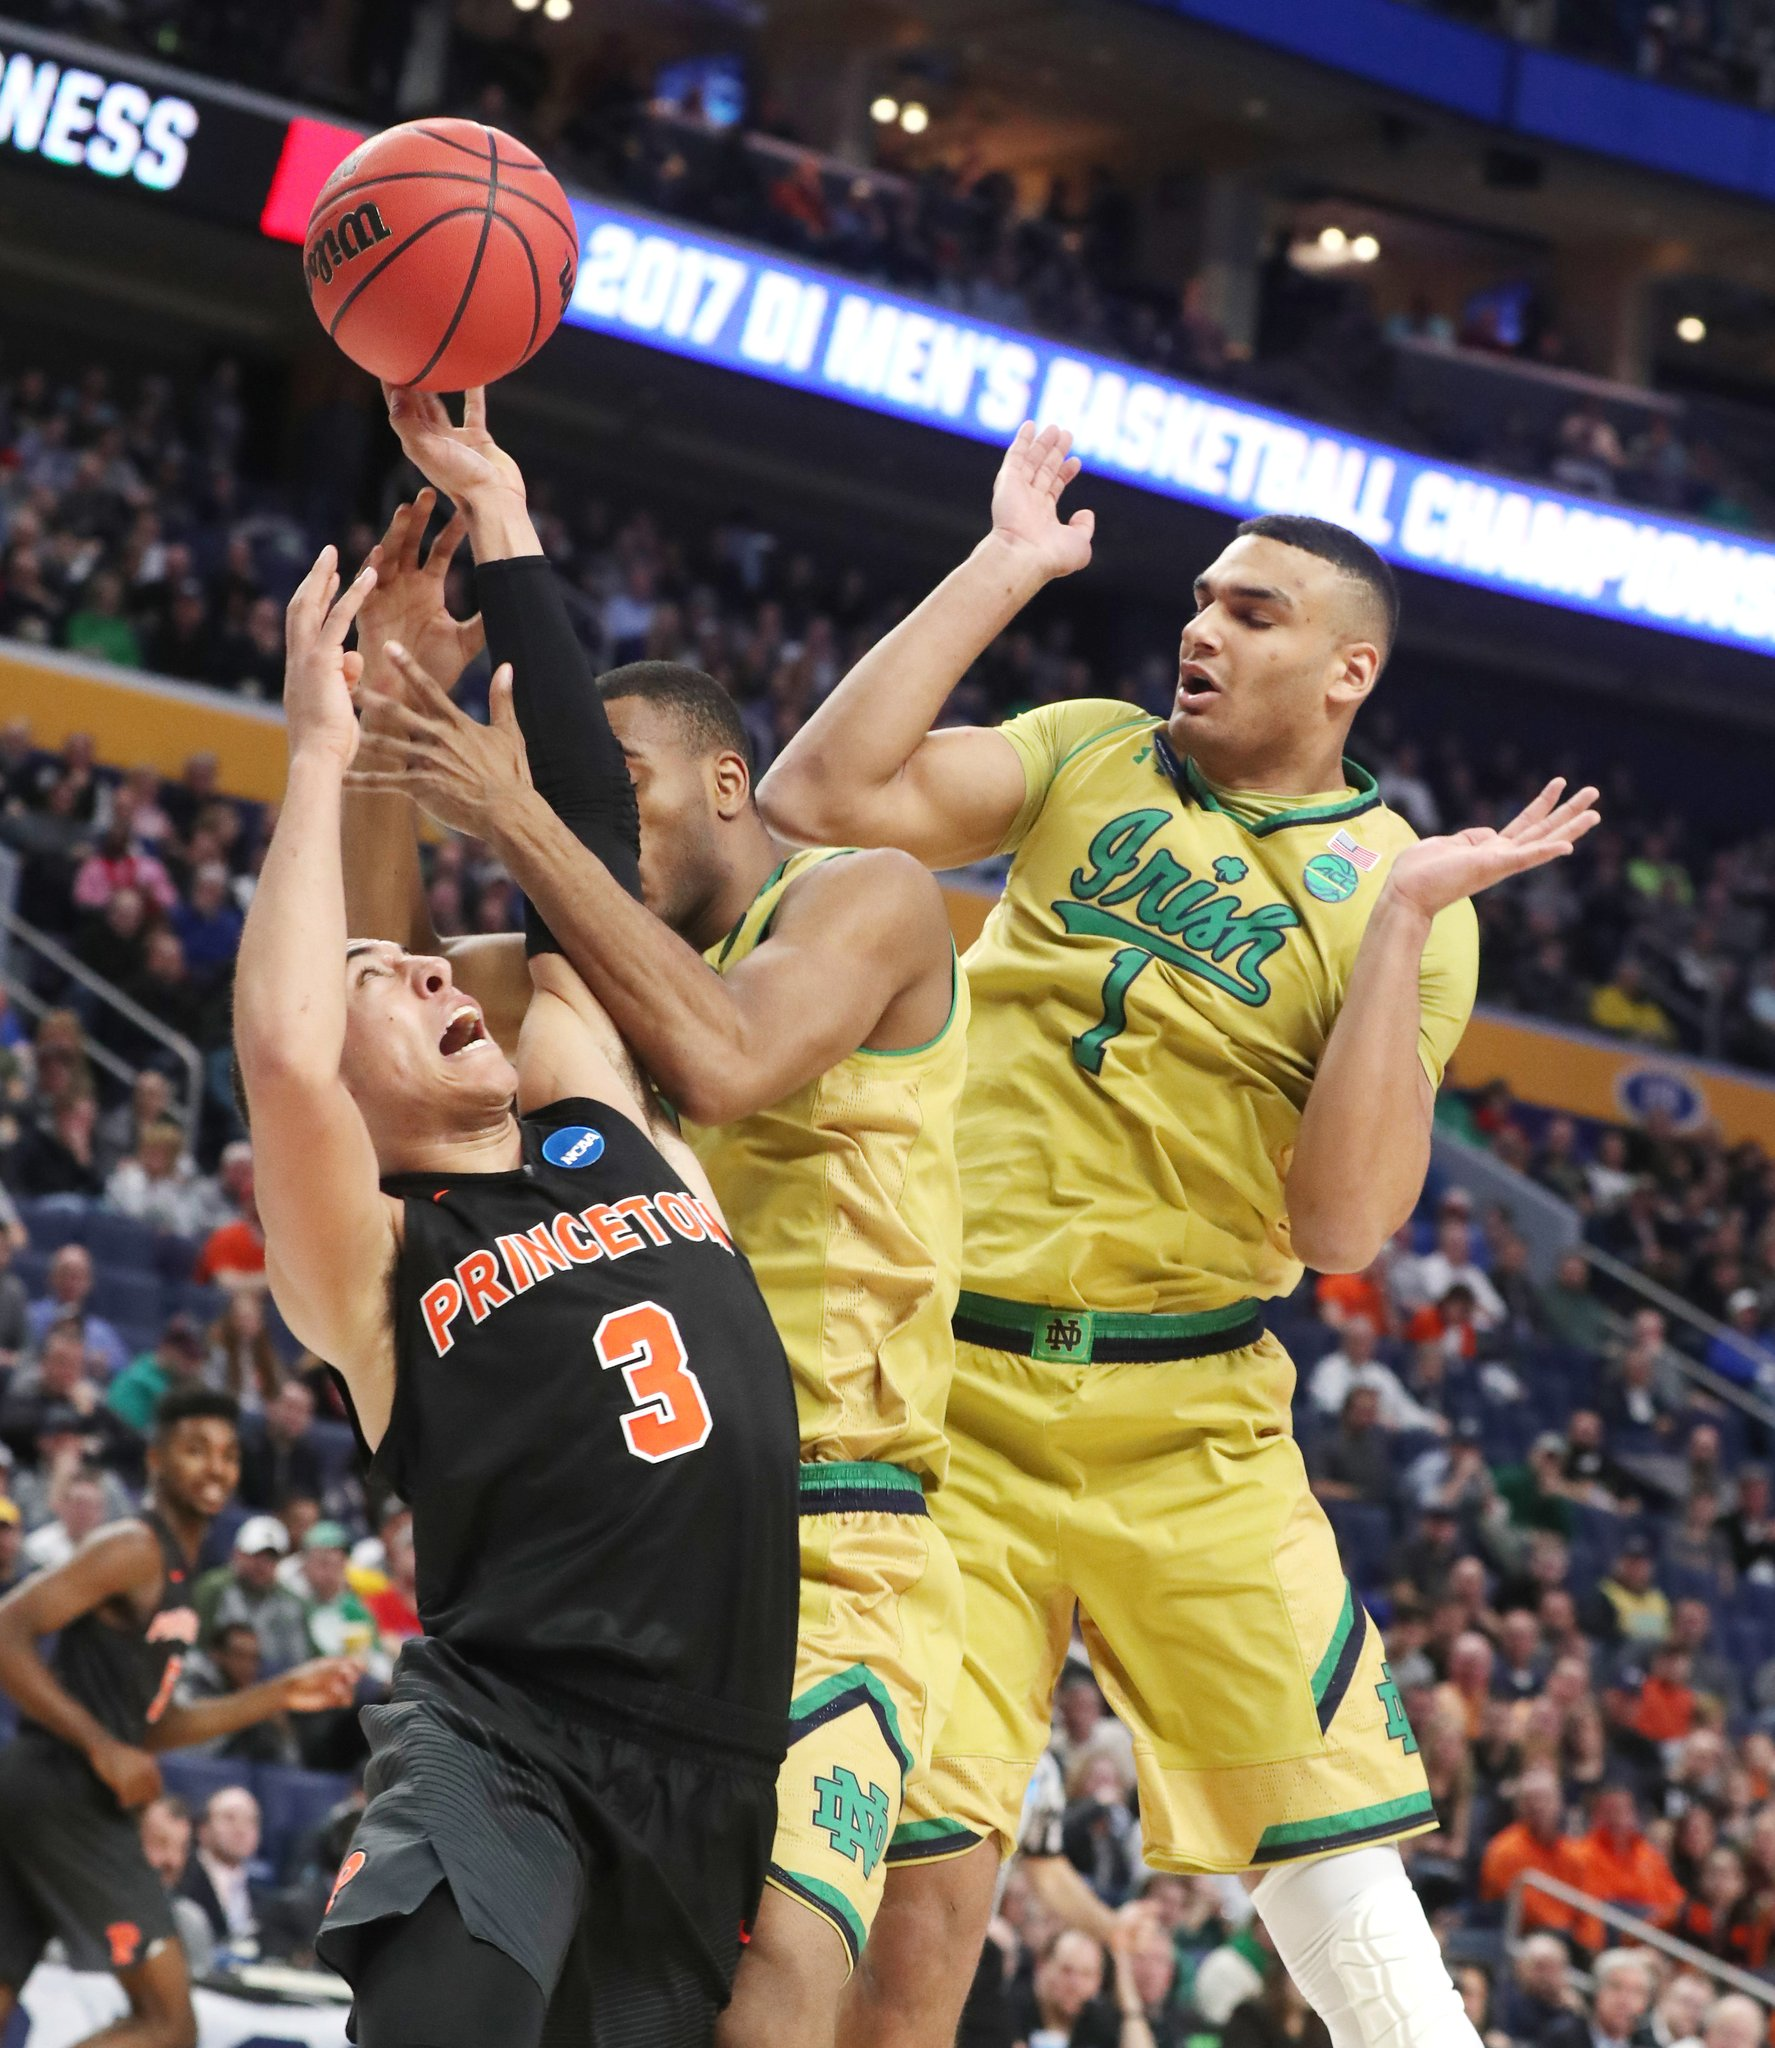 Notre Dame's V.J. Beachem battles Princeton Tigers guard Devin Cannady. (James P. McCoy/Buffalo News)